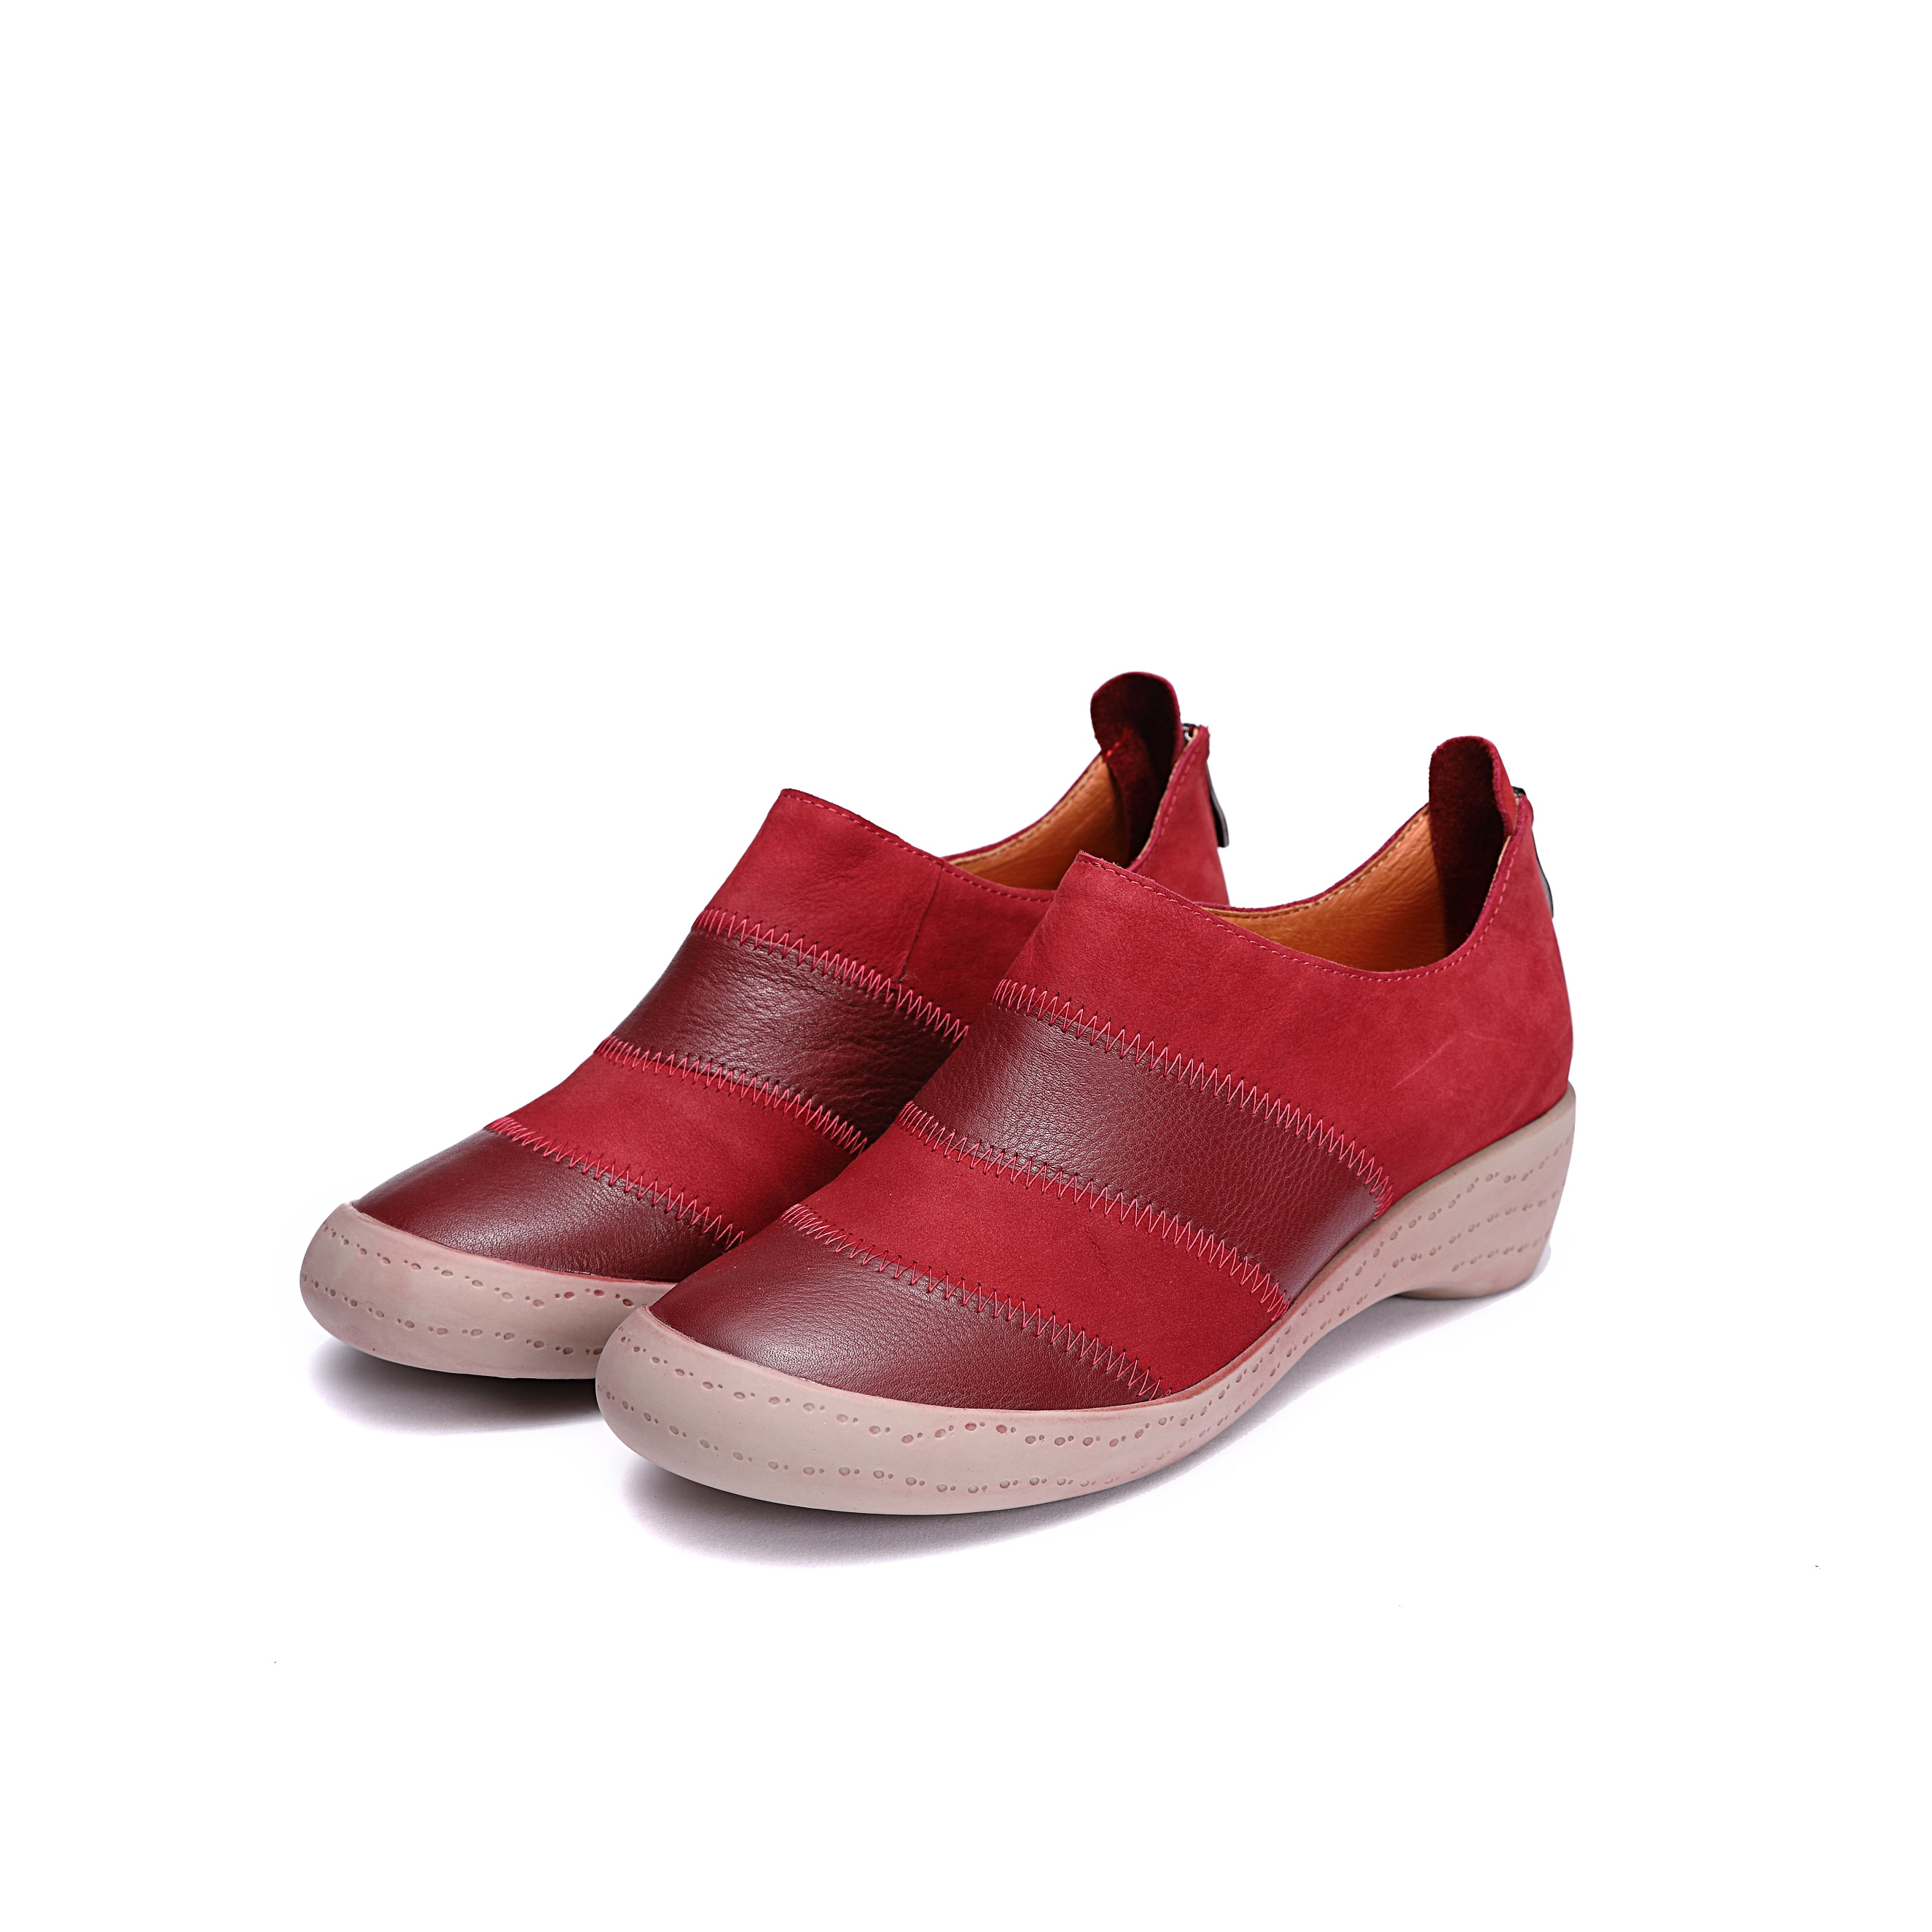 Autumn Women Flats Loafers Shoes Genuine Leather Female Shoes Lace Up Loafers Casual Lace-Up Walking